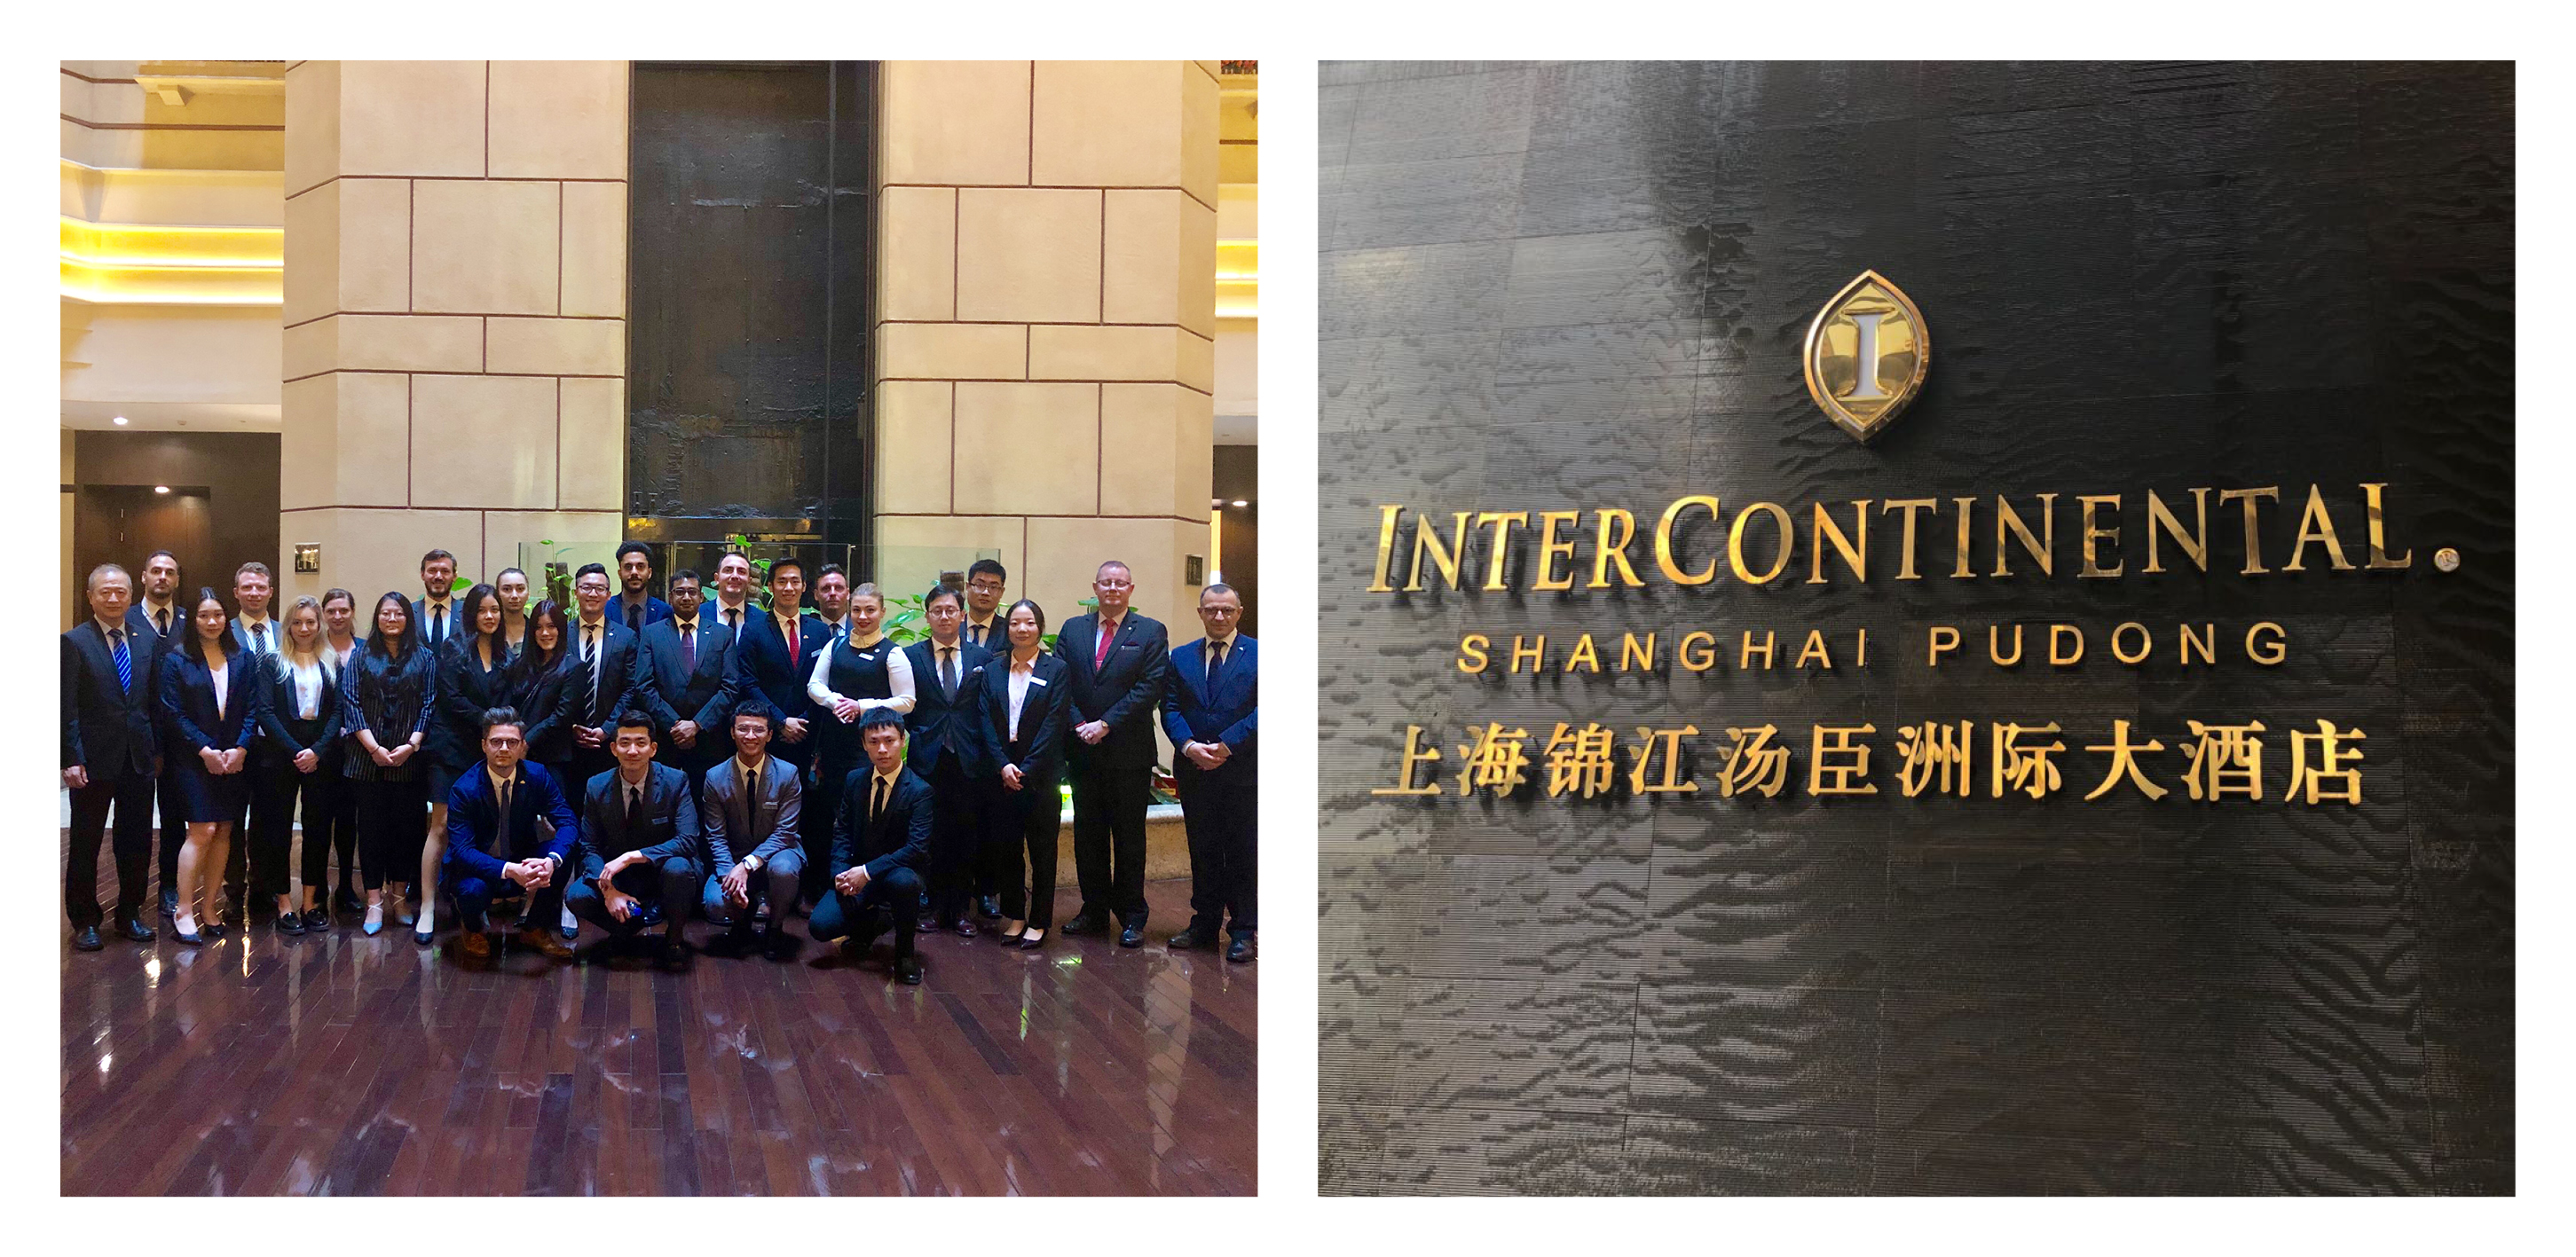 BL041_MBA_ShanghaiTrip_InterContinental